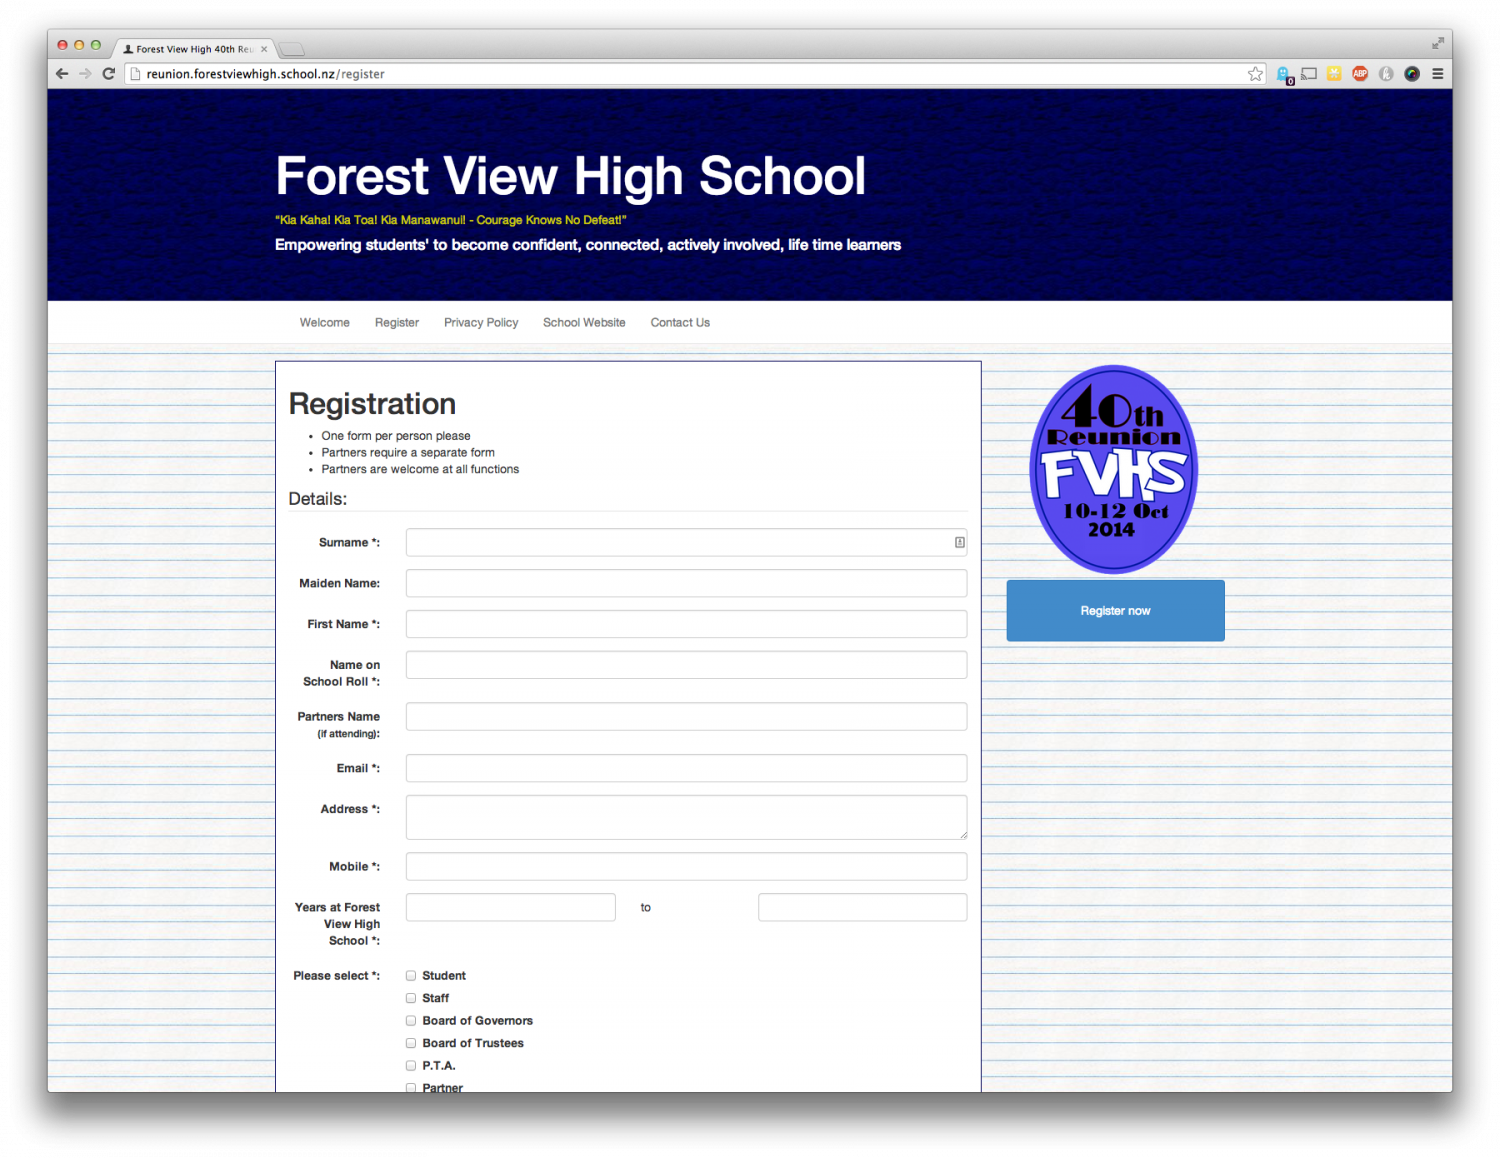 New Reunion Registration website for Forest View High School